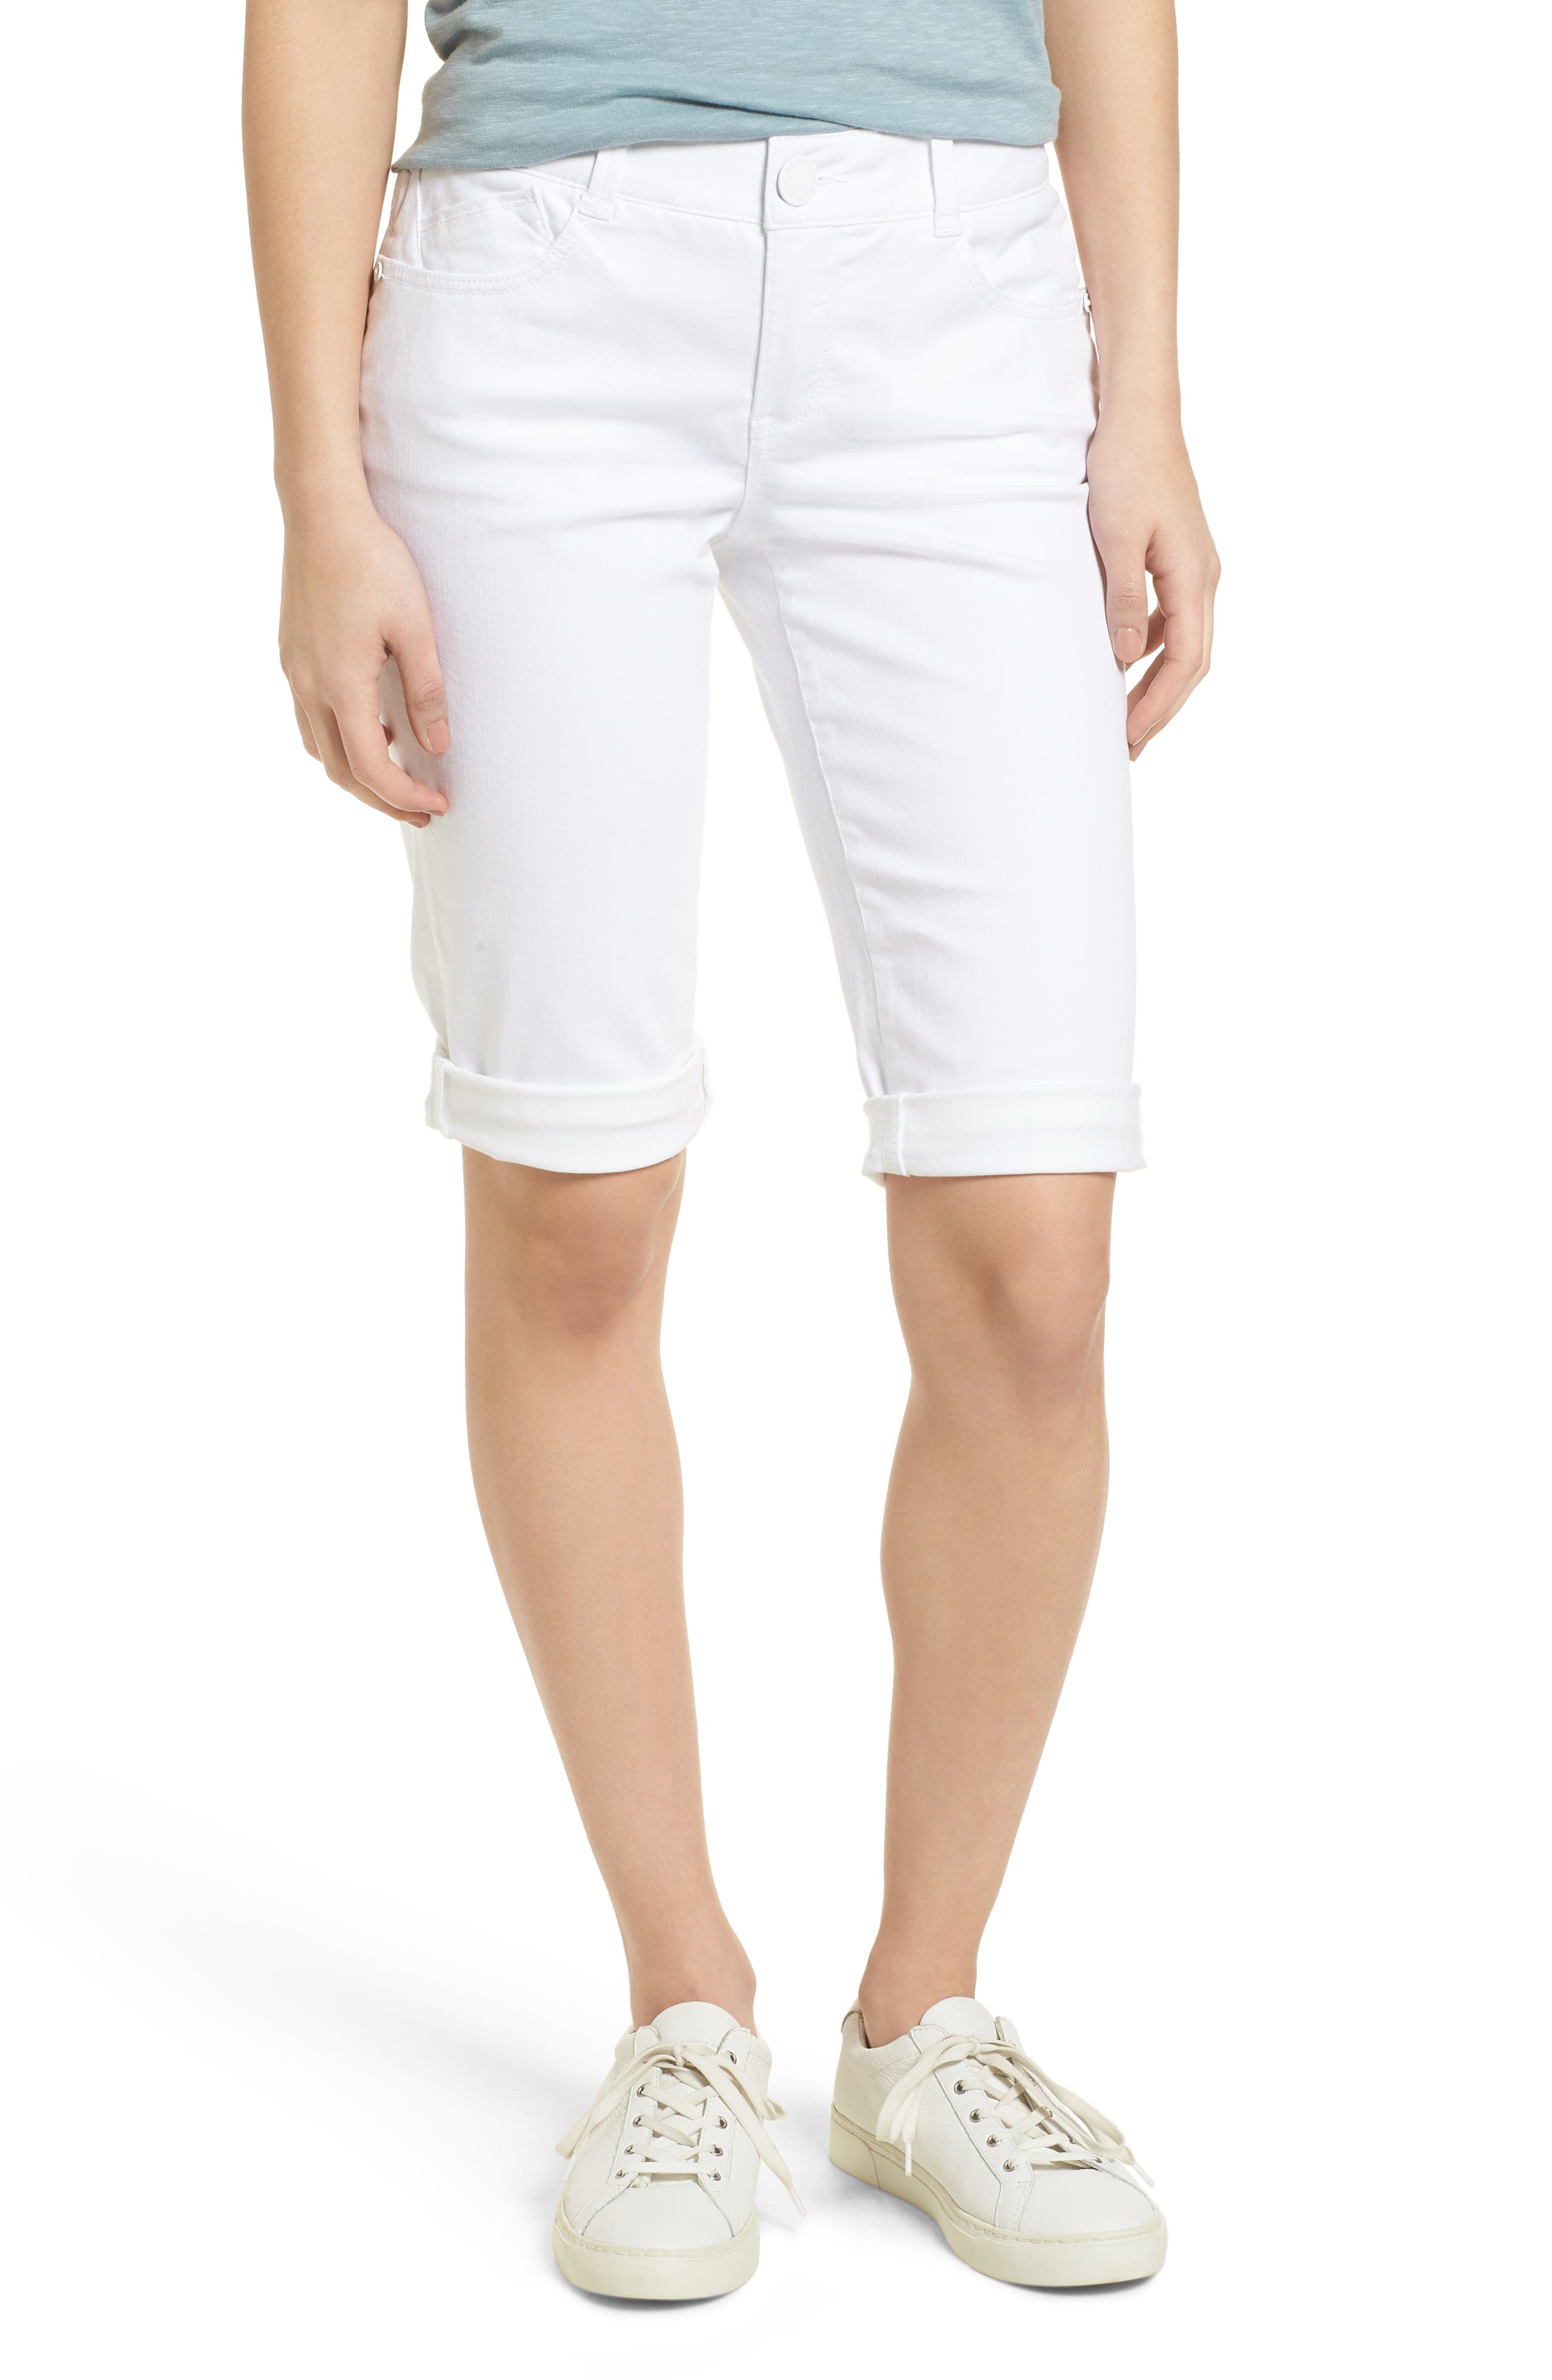 Alternate Image 1 Selected - Wit & Wisdom Ab-solution White Bermuda Shorts (Nordstrom Exclusive)